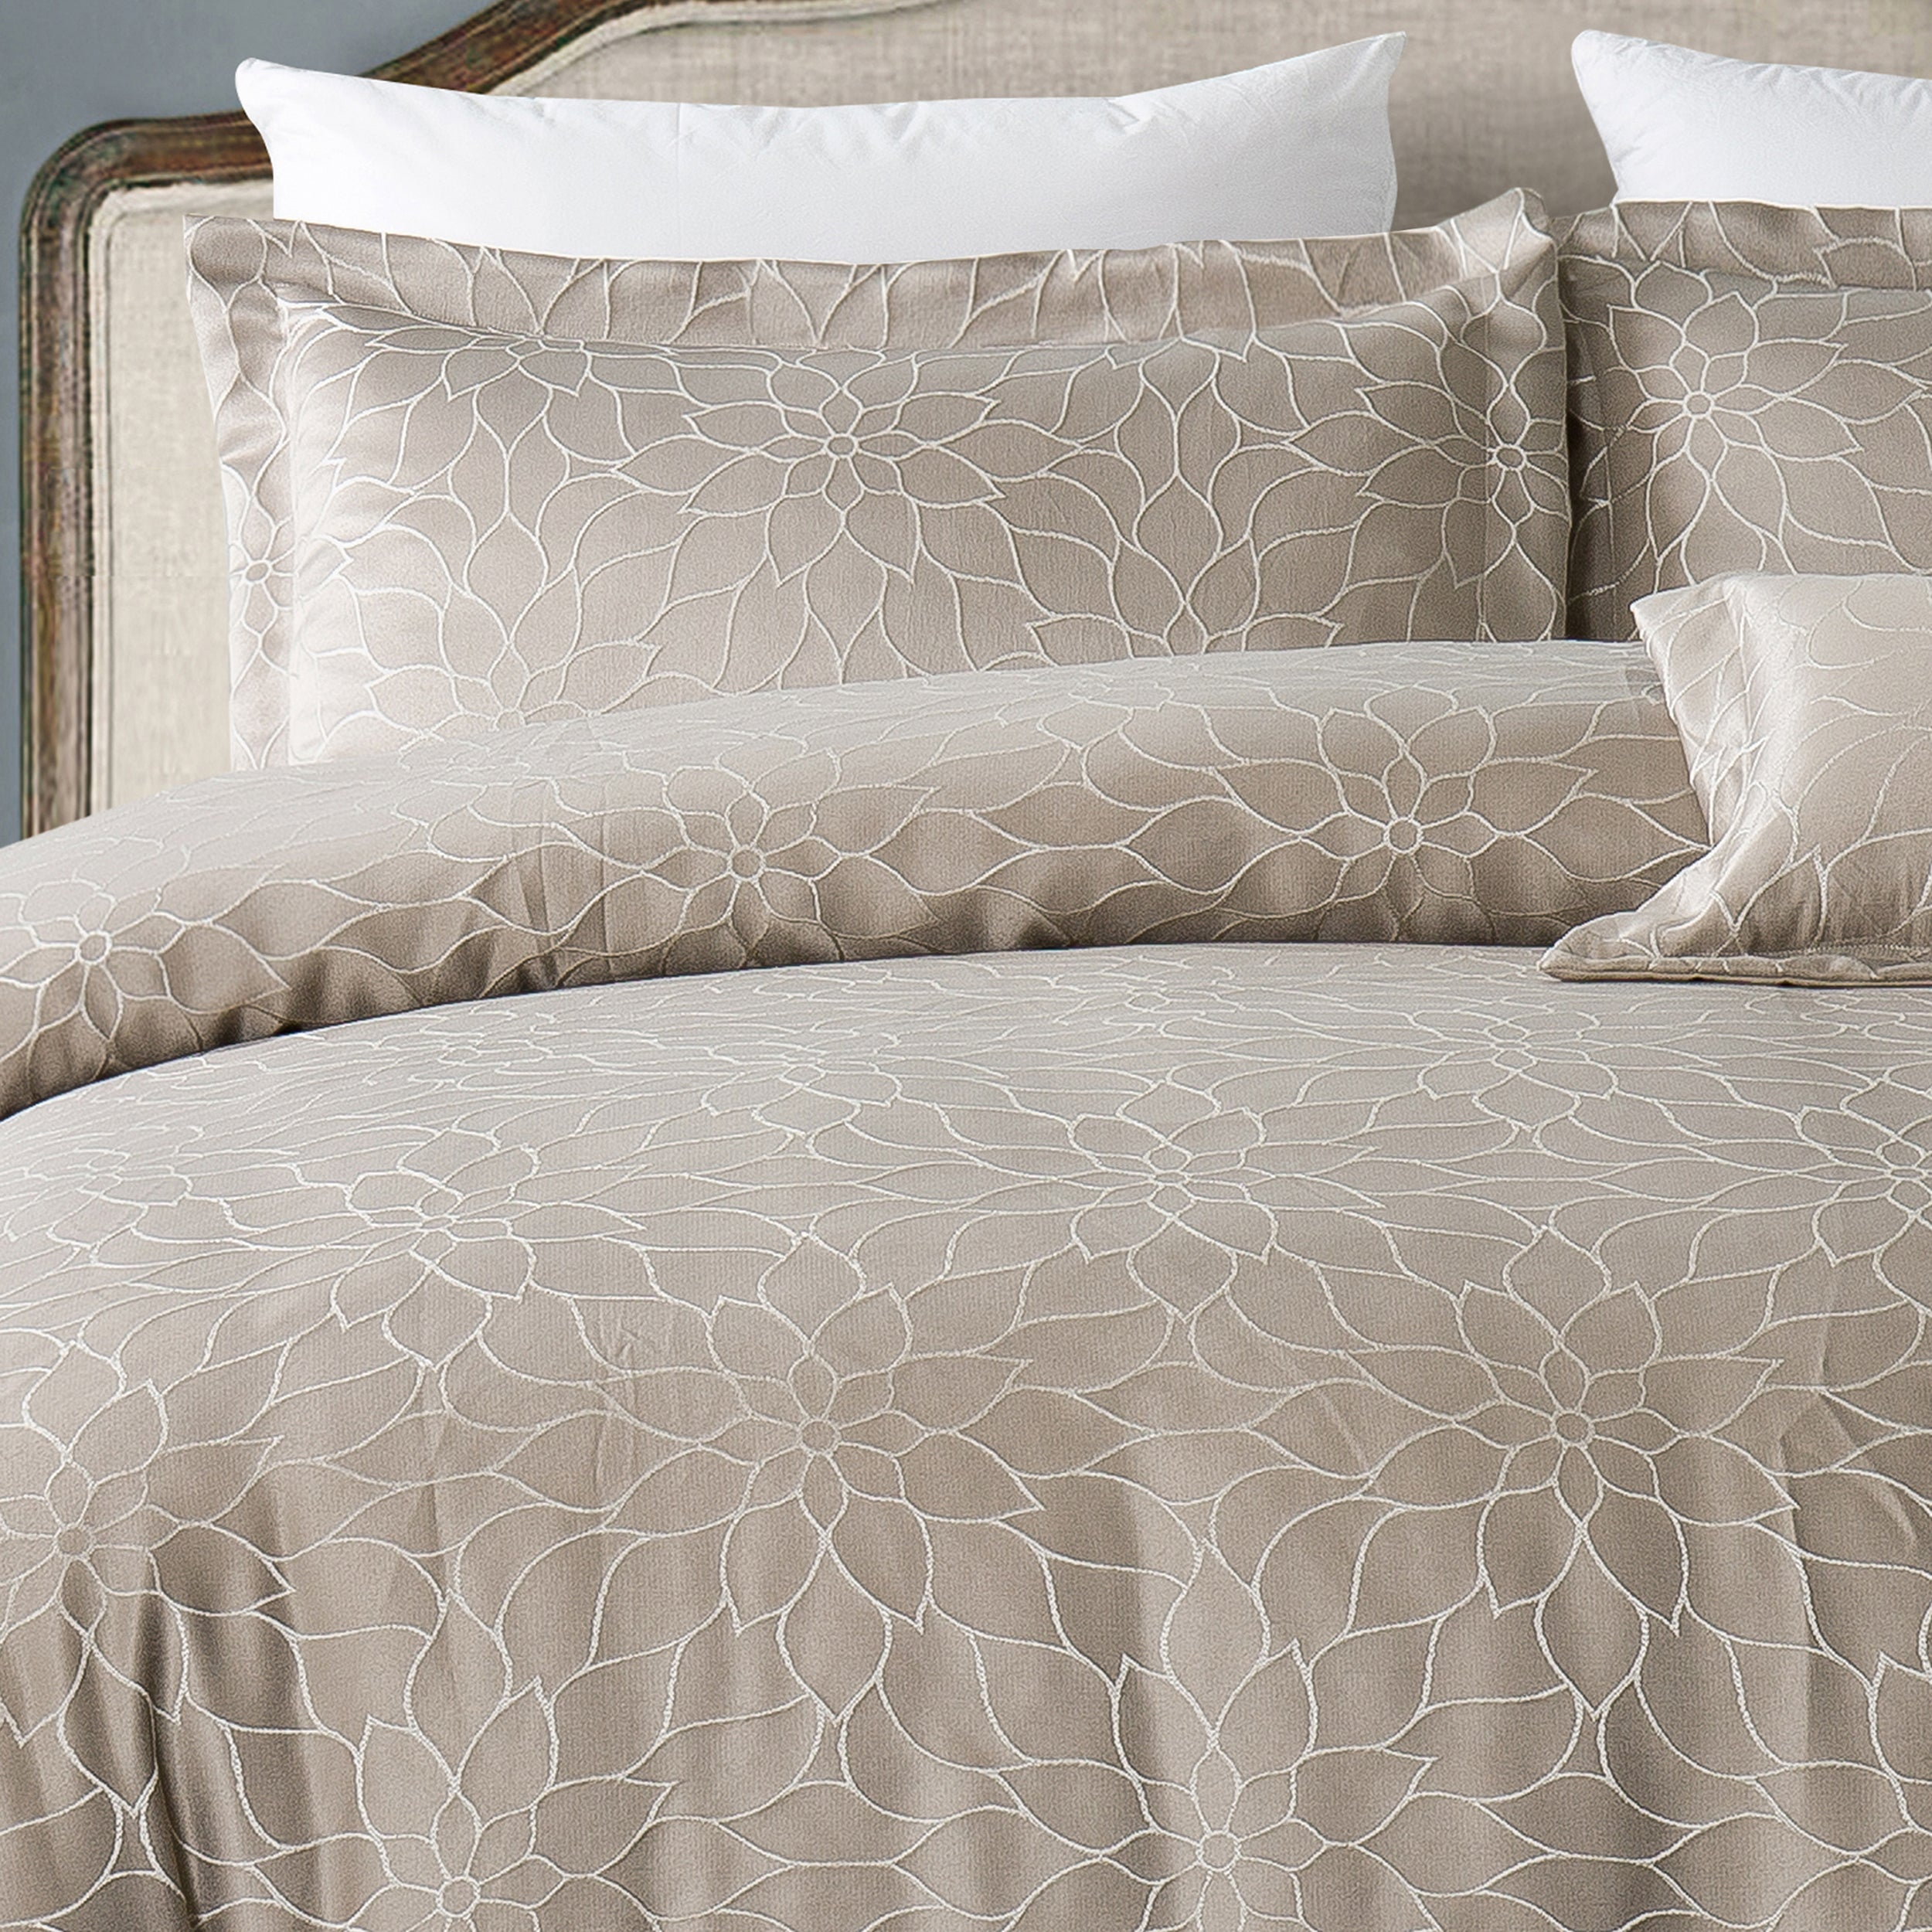 concept and king at setscomforter pictures breathtaking touch biltmore comforters full wayfair class york bedding comforter new hotel sets comfort of size